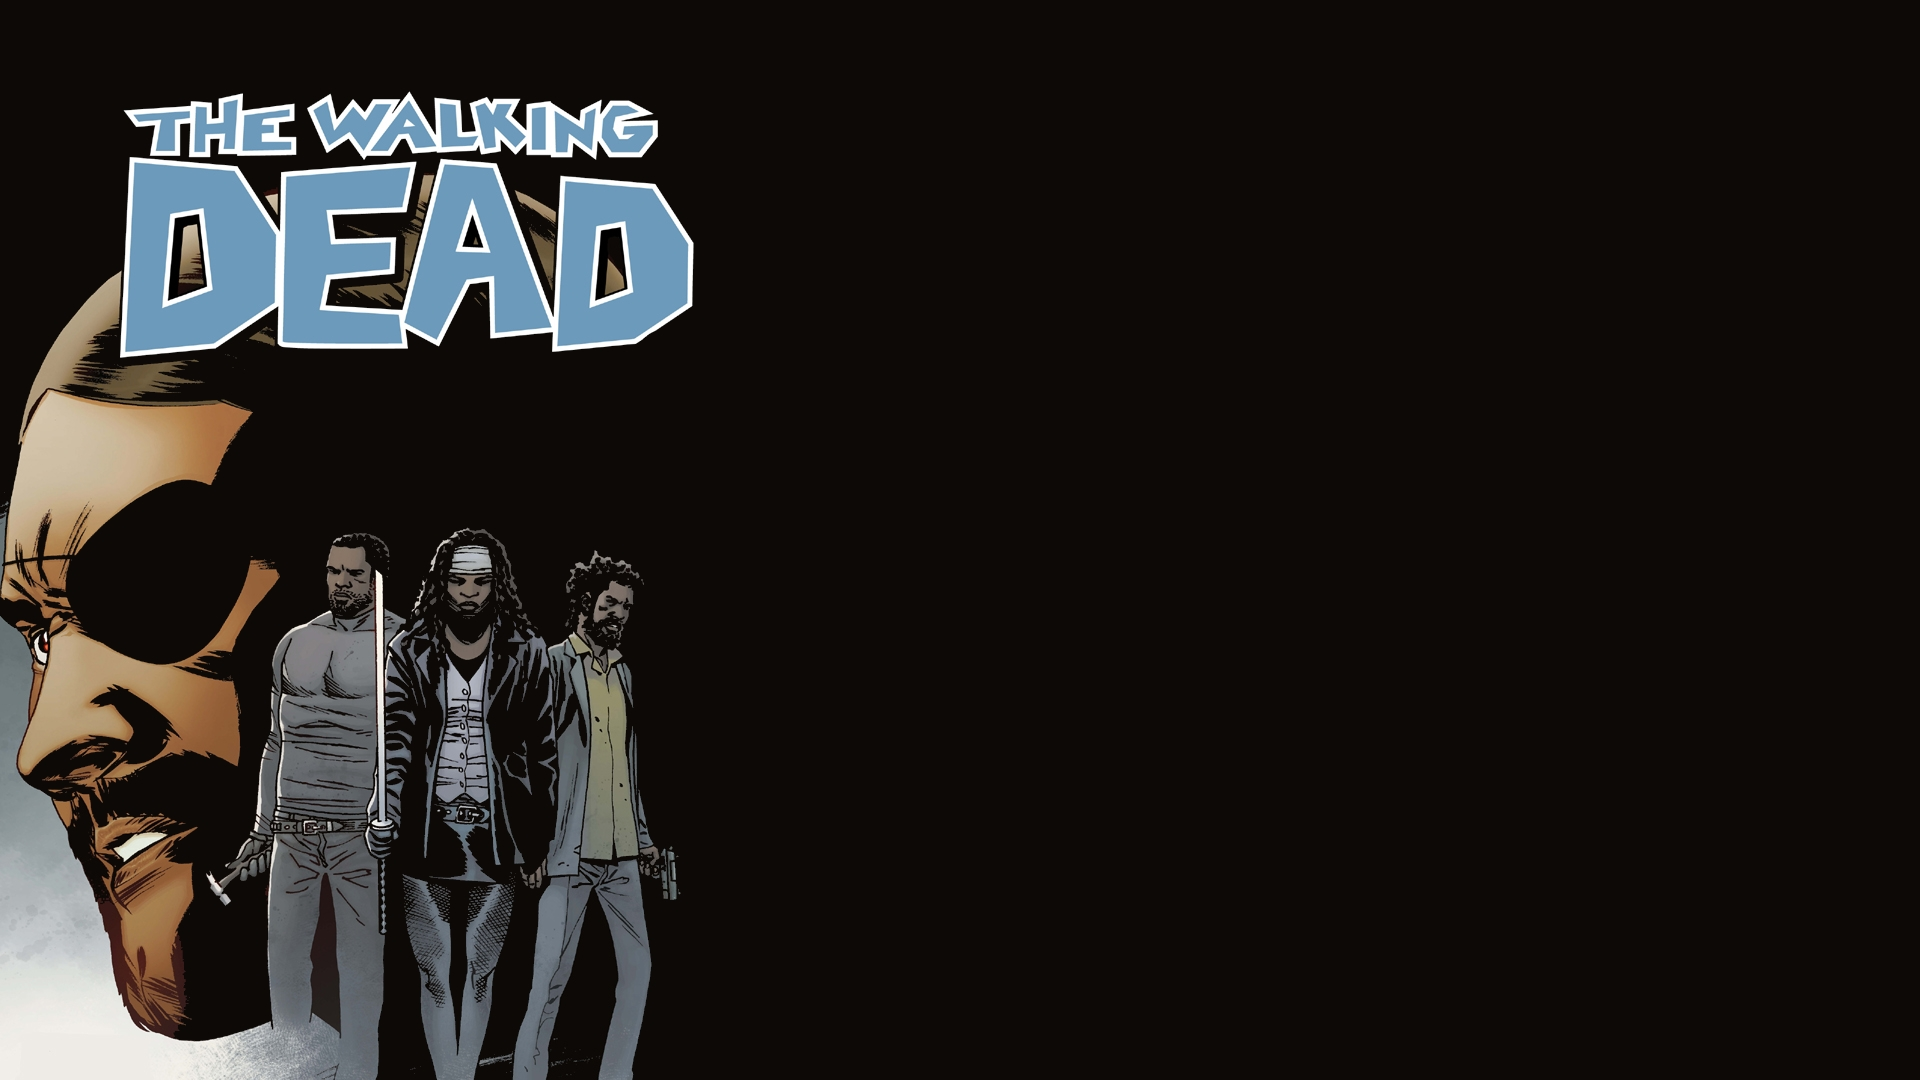 walking dead comic wallpaper - wallpapersafari